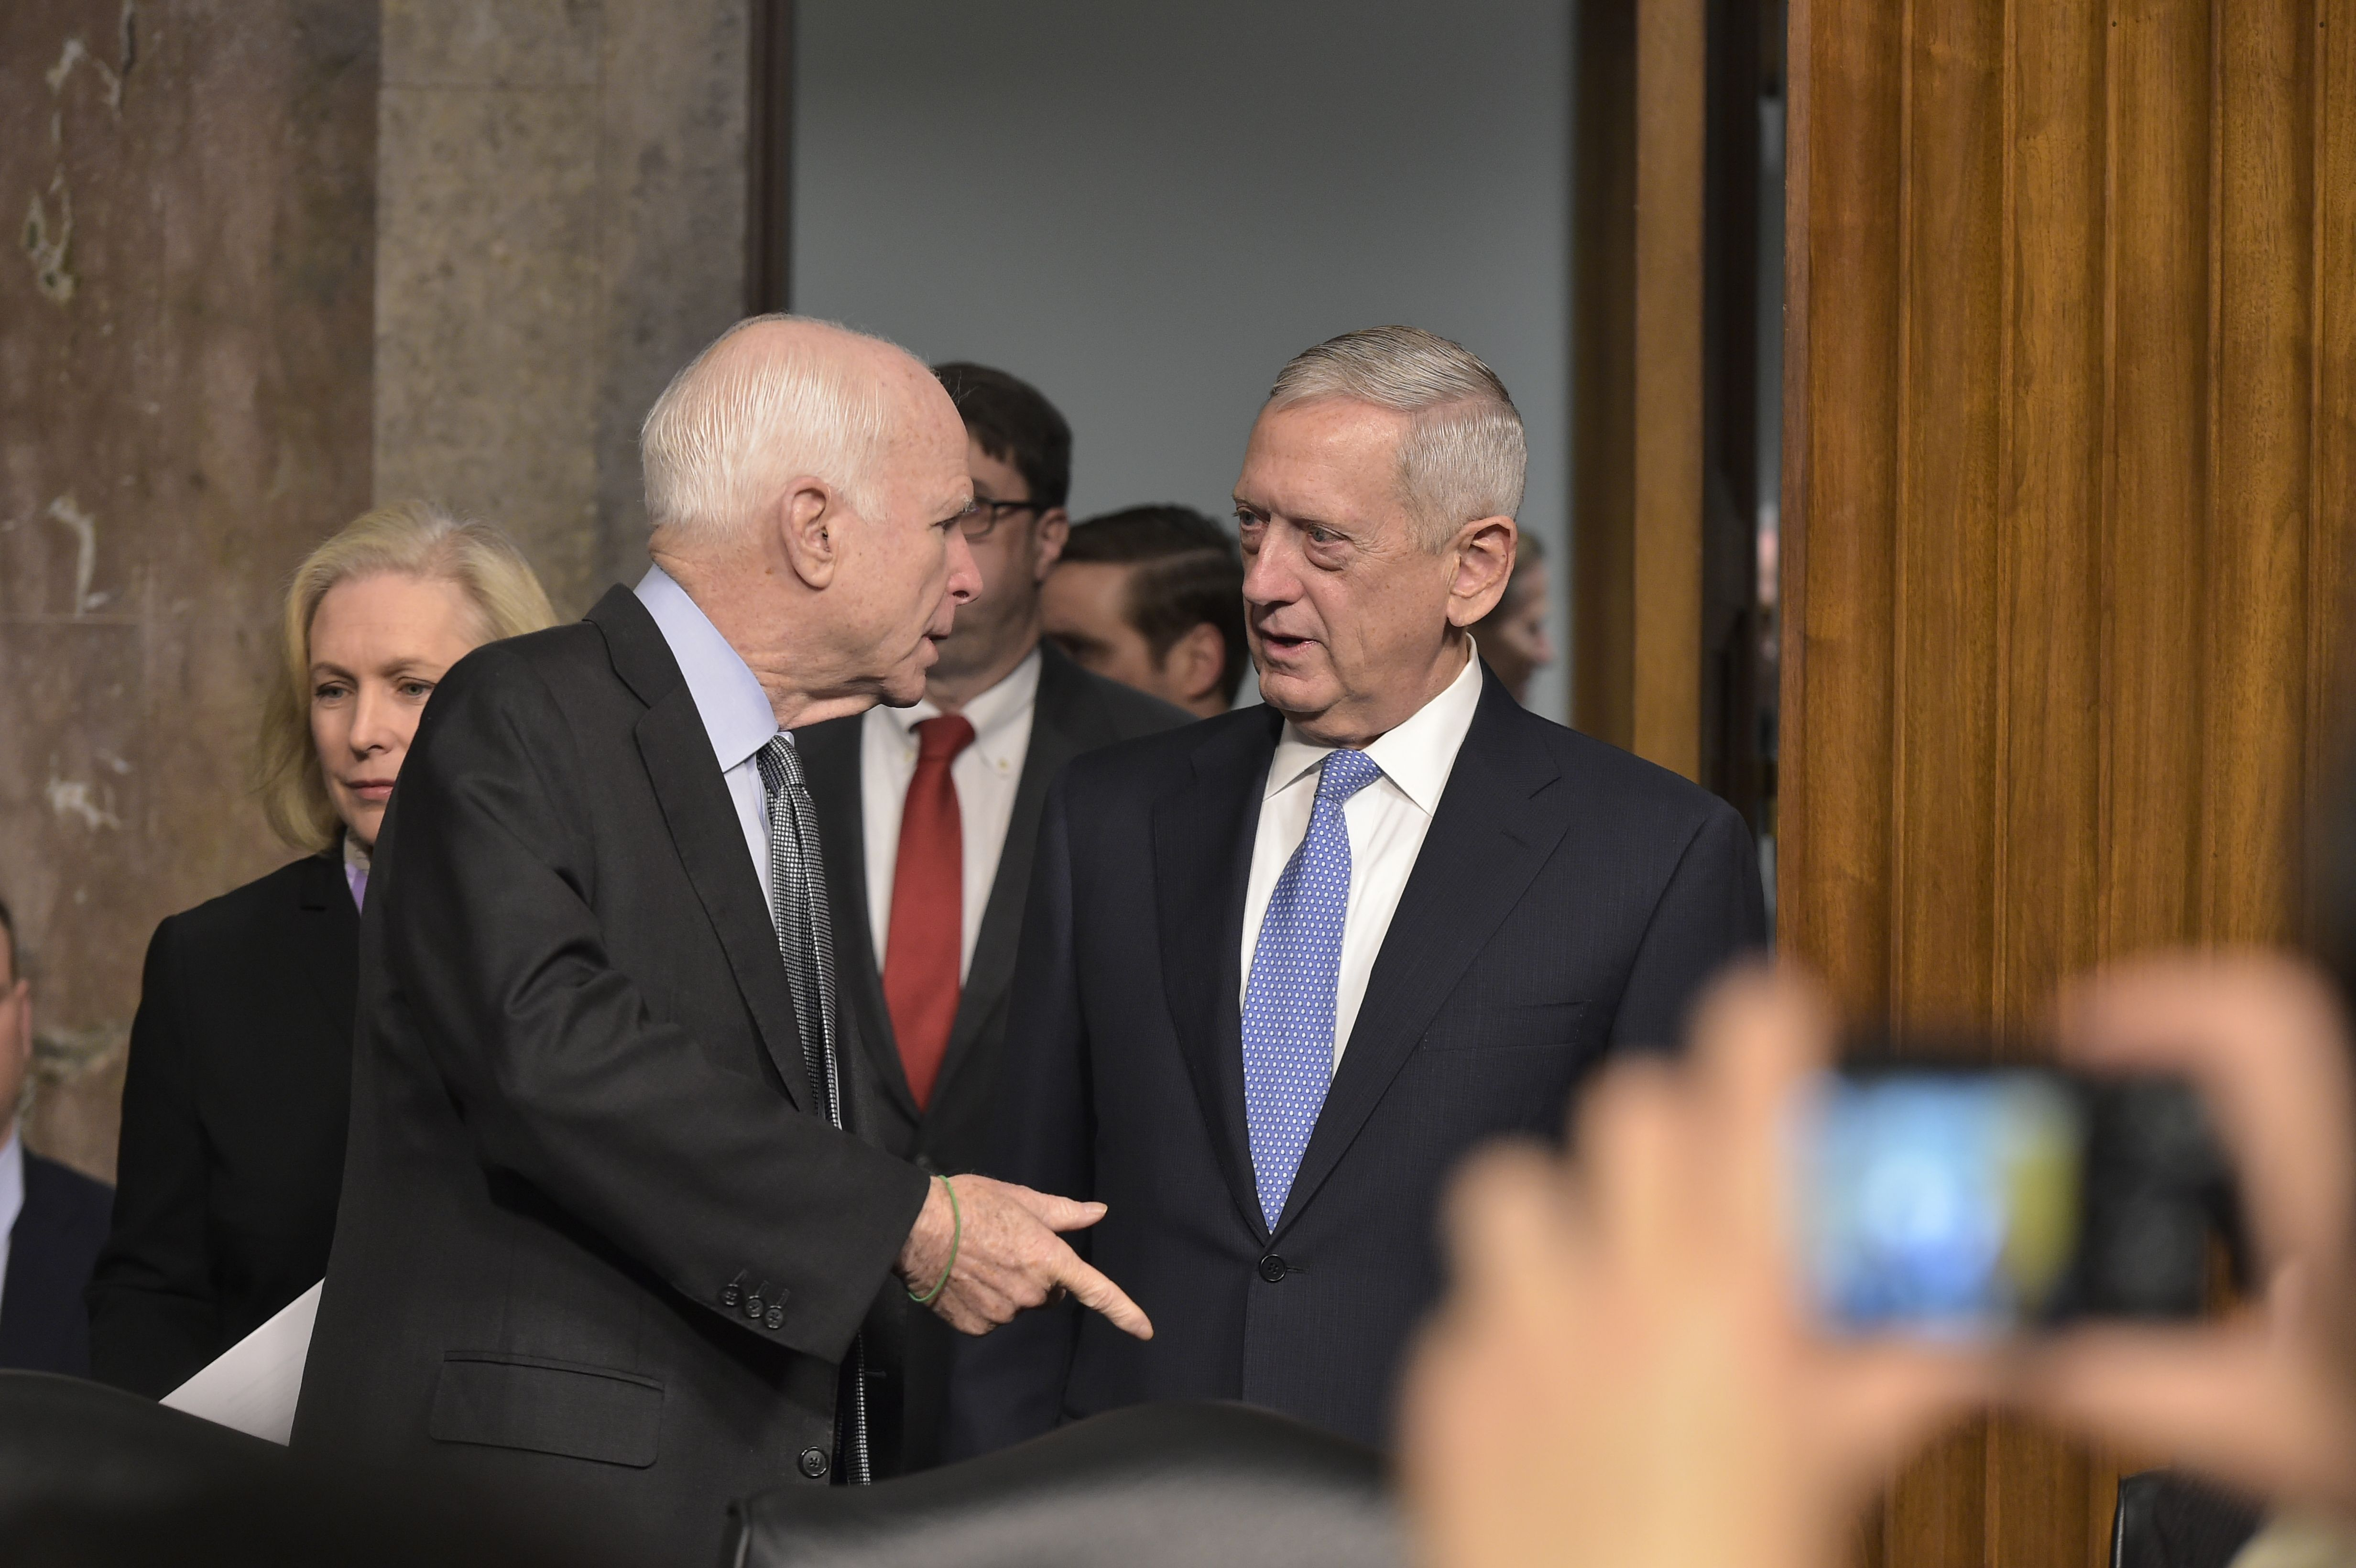 Boiling point: McCain frustrations with Mattis, McMaster go public